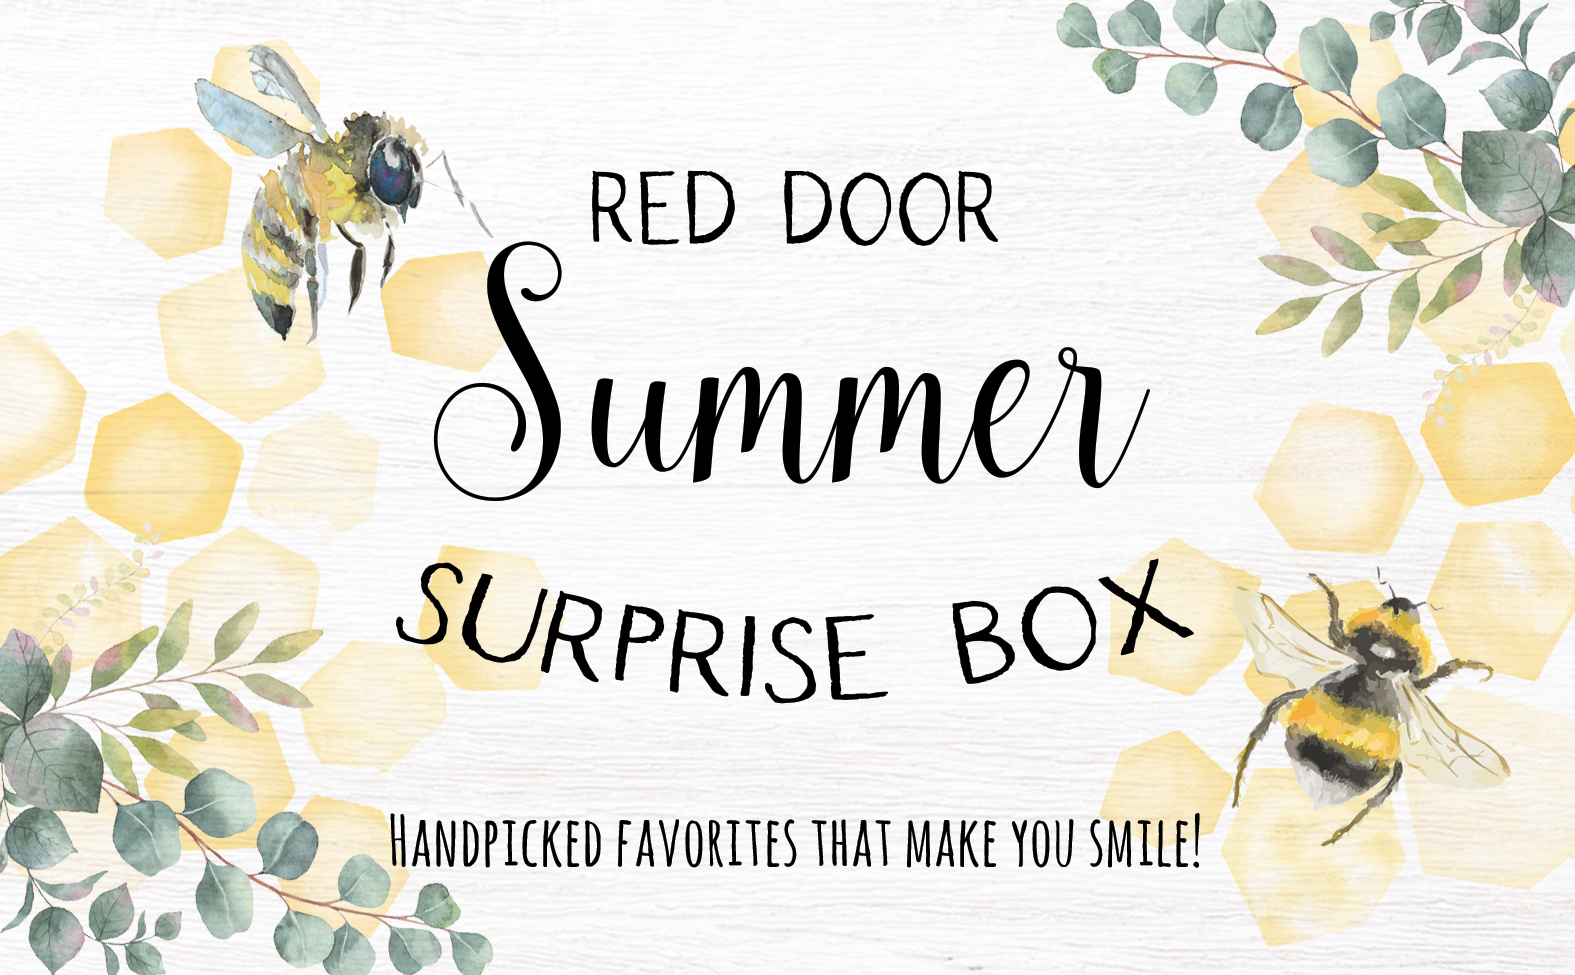 Red Door Surprise boxes!